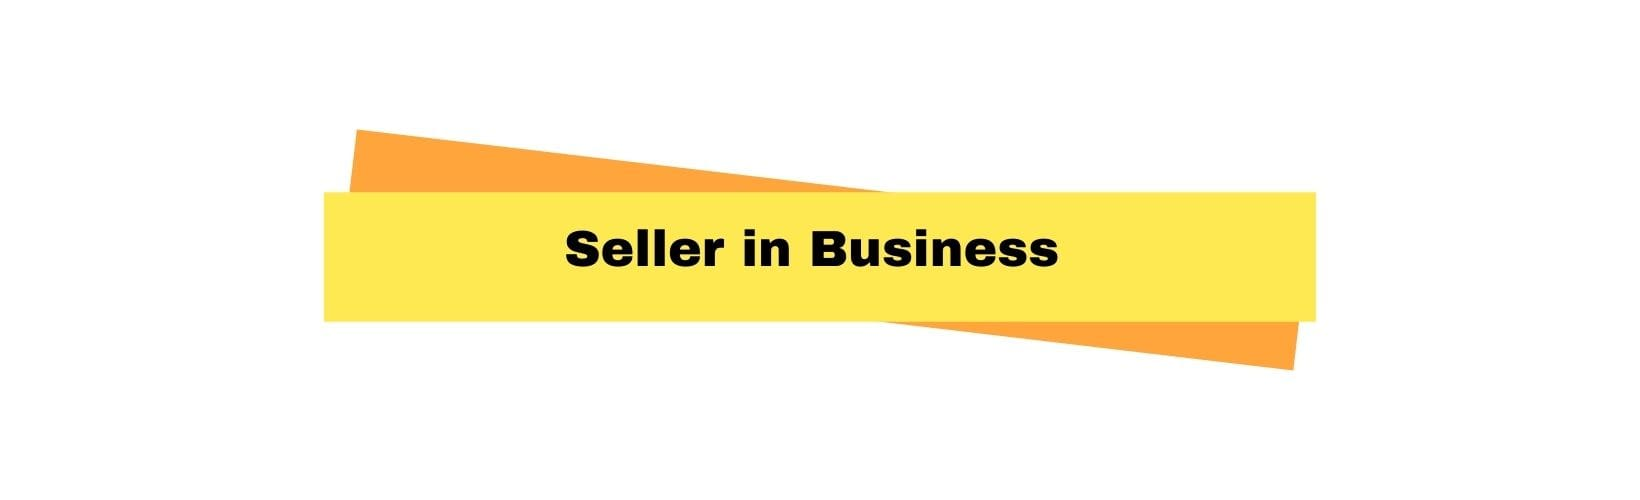 seller in business in important person